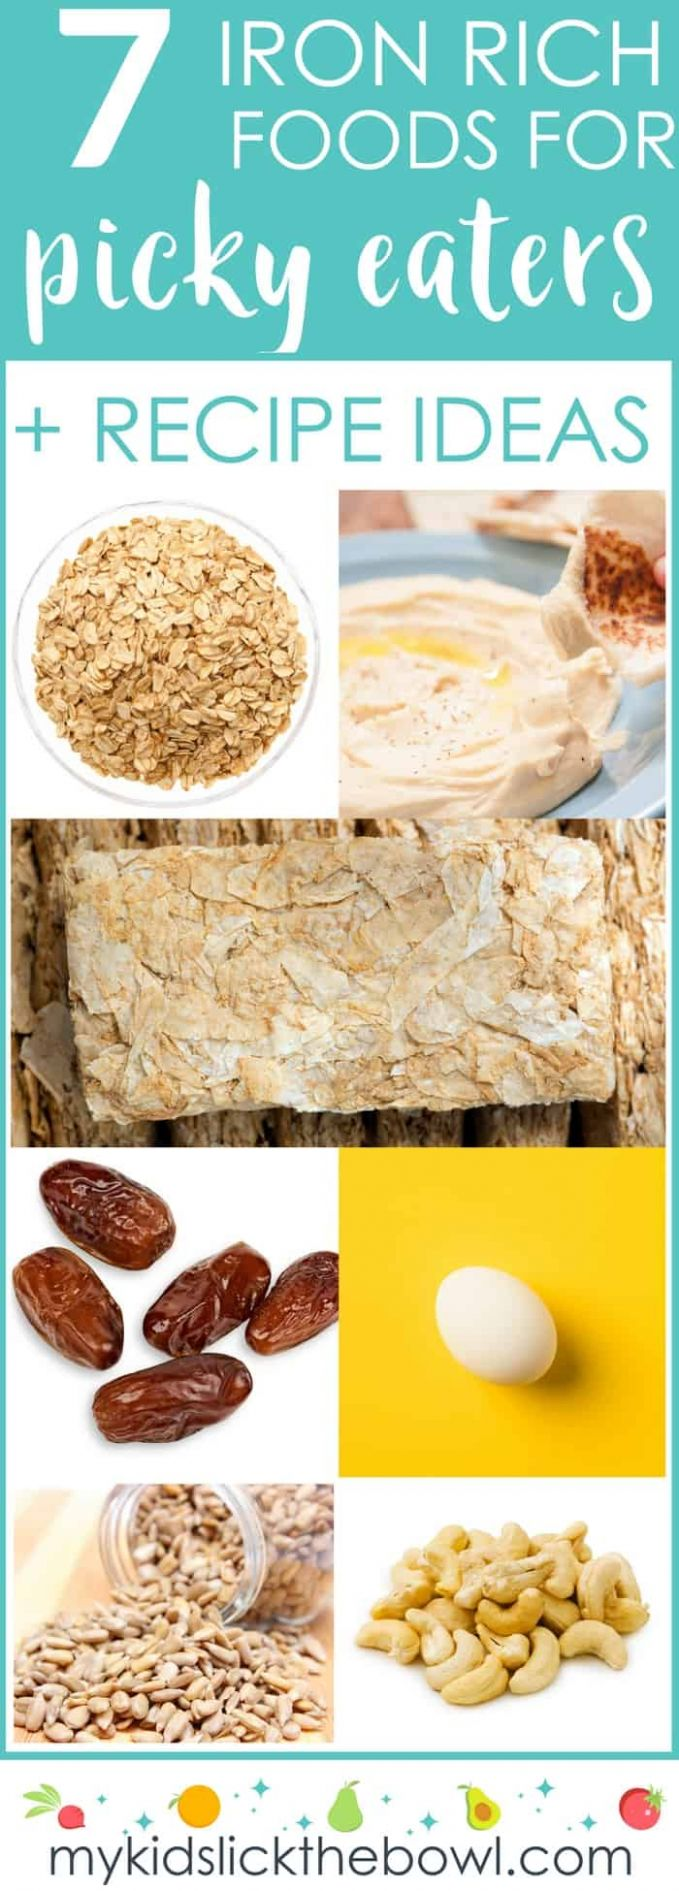 Iron Rich Foods For Kids + 9 Iron Rich Recipes For Picky Eaters - Food Recipes High In Iron